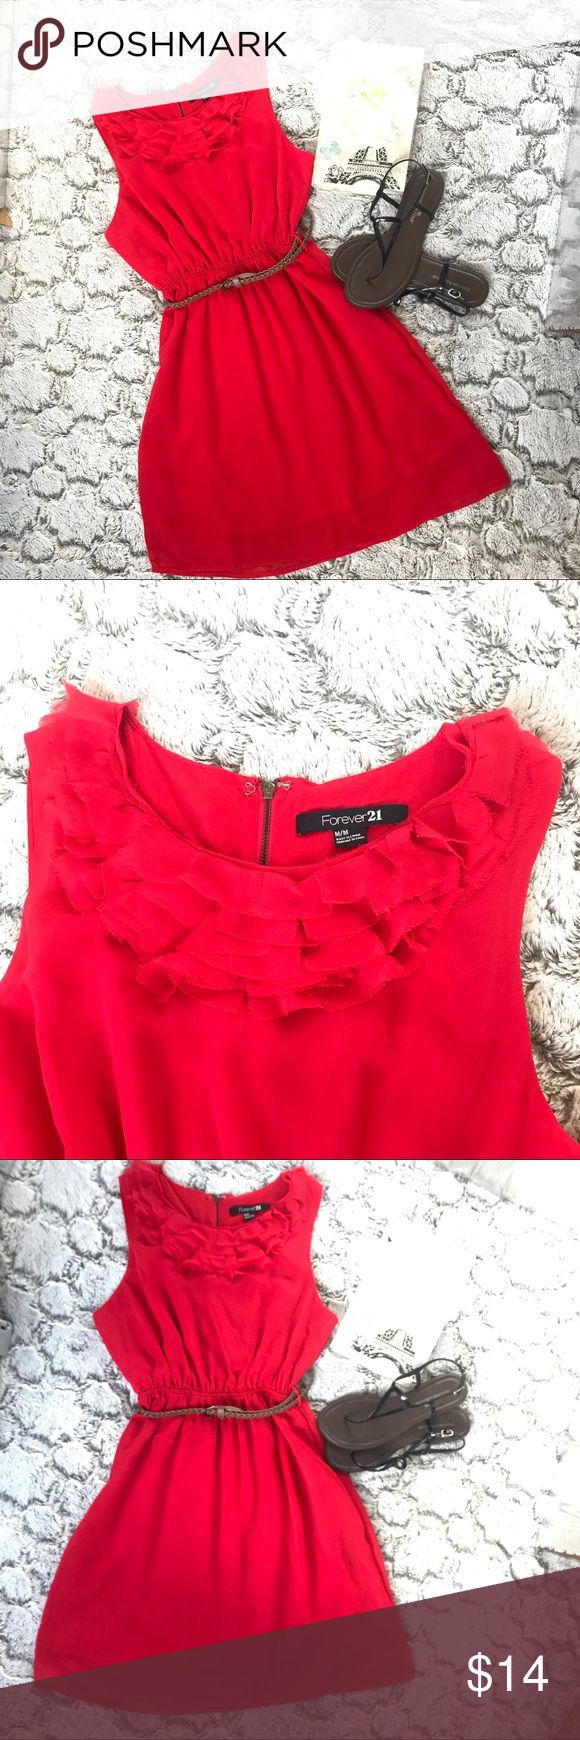 Forever 21 Princess red dress Super Cute dress perfect for summer!👗 Forever 21 Dresses Mini